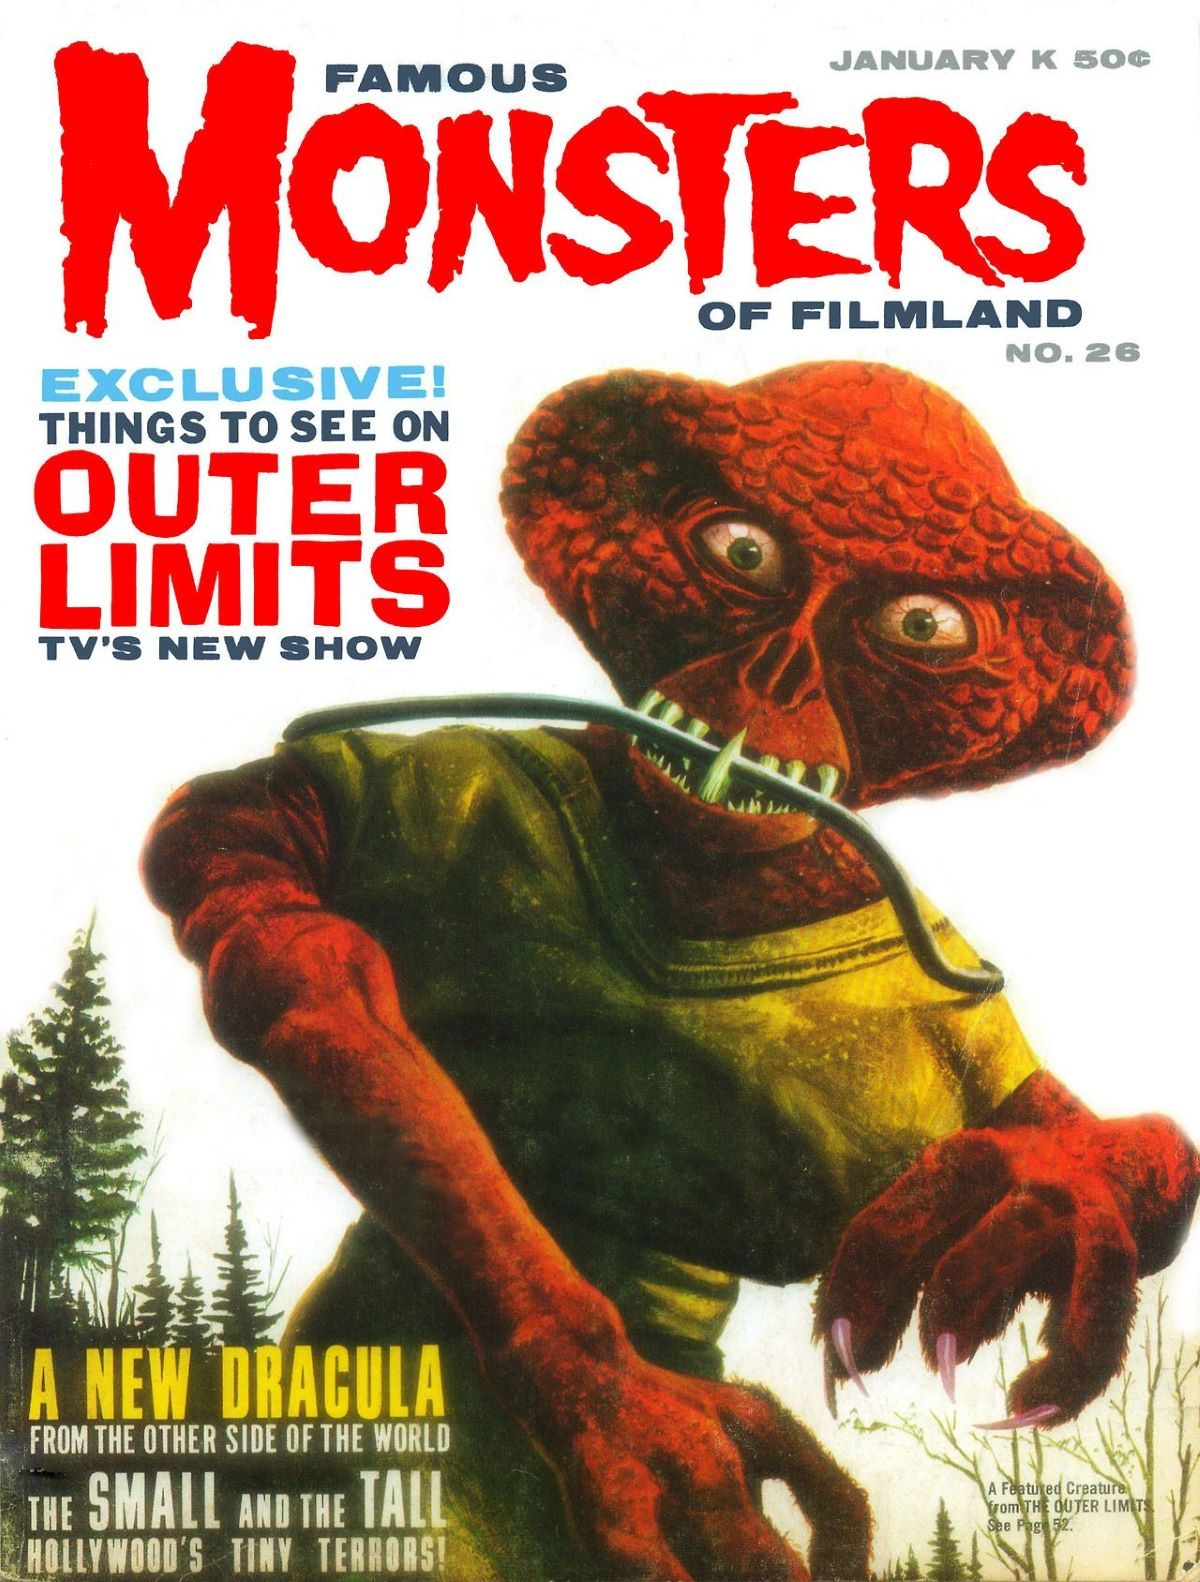 Famous Monsters of Filmland, magazine, horror films, The Outer Limits, 1960s